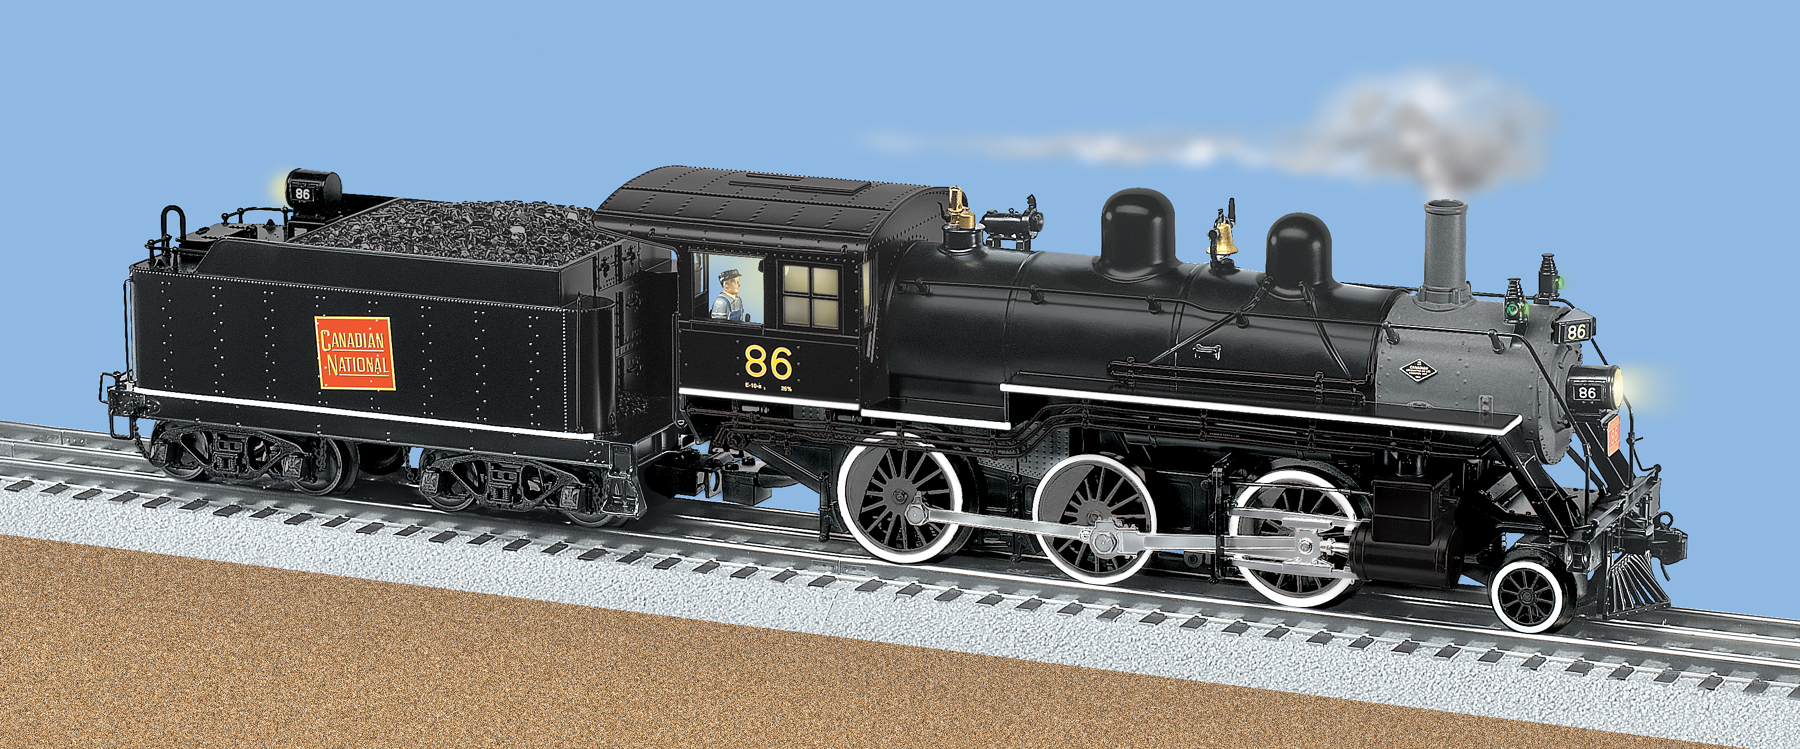 Canadian National Tmcc Scale 2 6 0 Mogul Steam Locomotive 86 Wiring Lionel  Whistle Lionel Locomotive Wiring Diagram